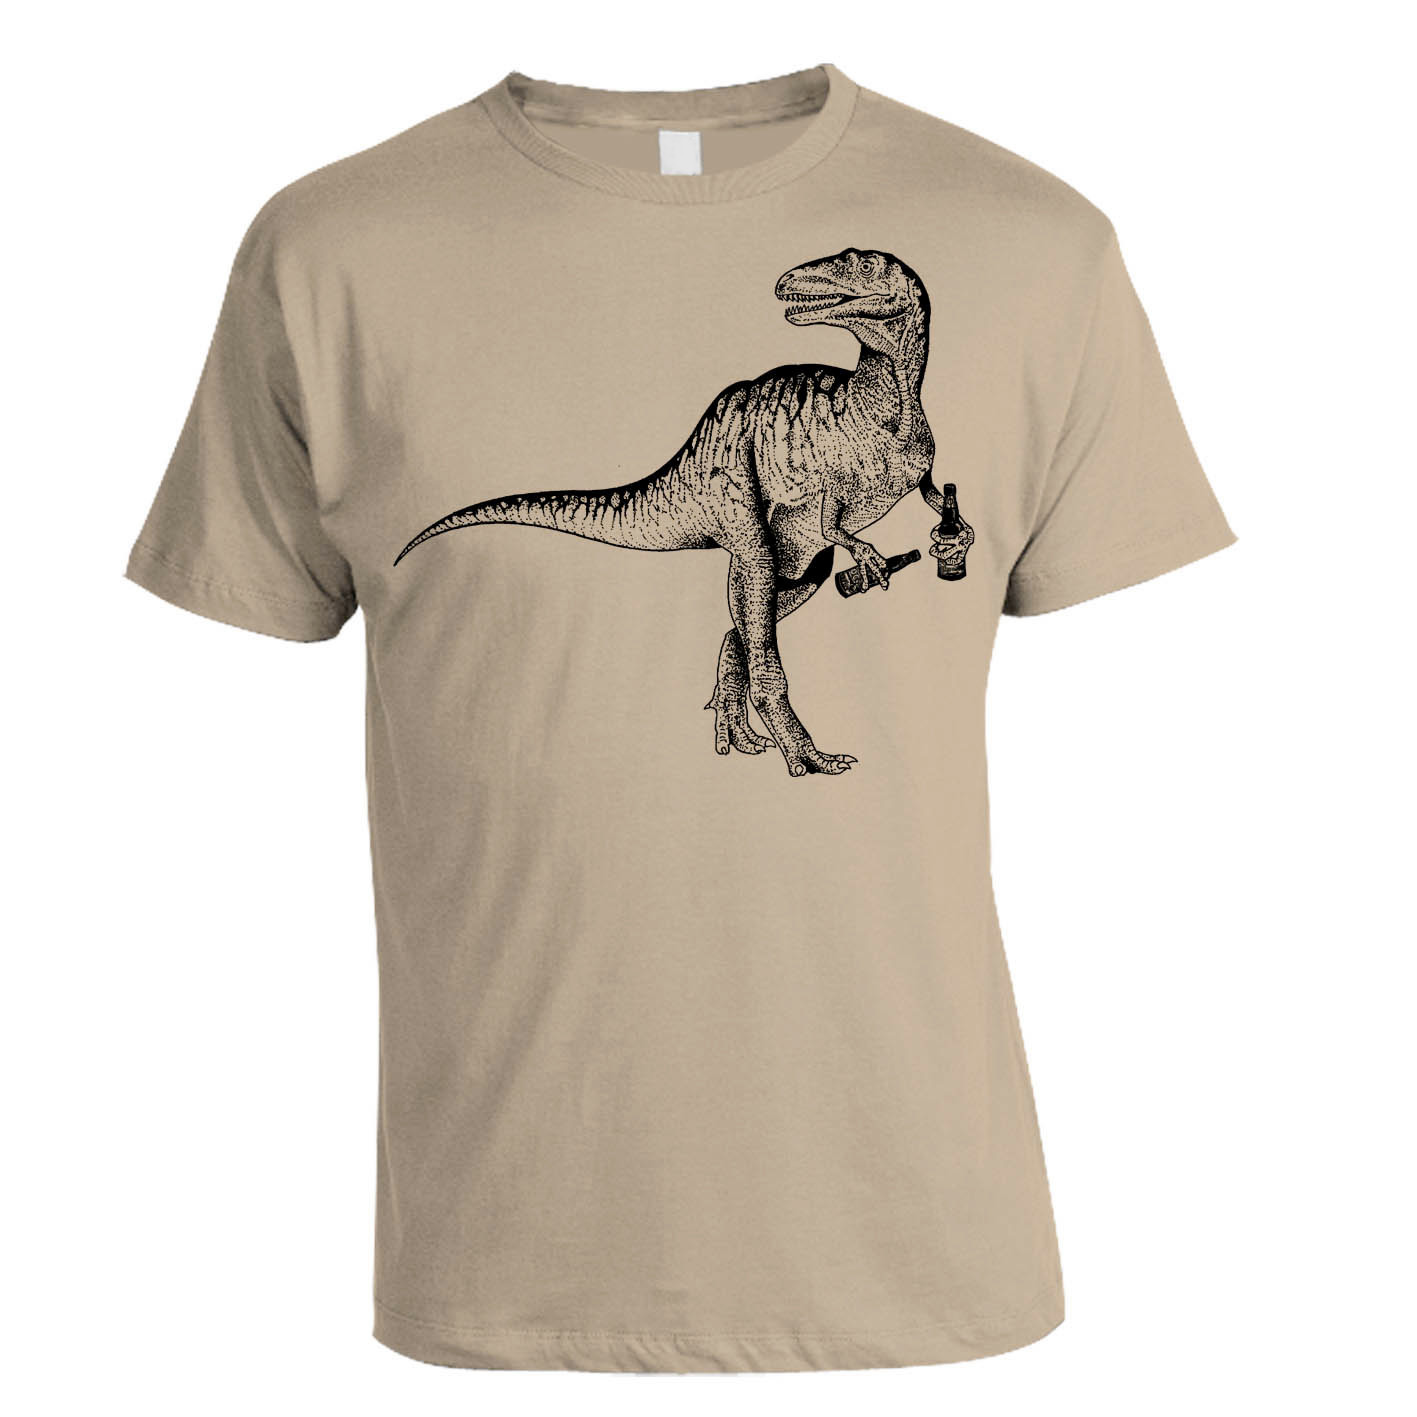 beer drinking dinosaur t shirt. Black Bedroom Furniture Sets. Home Design Ideas